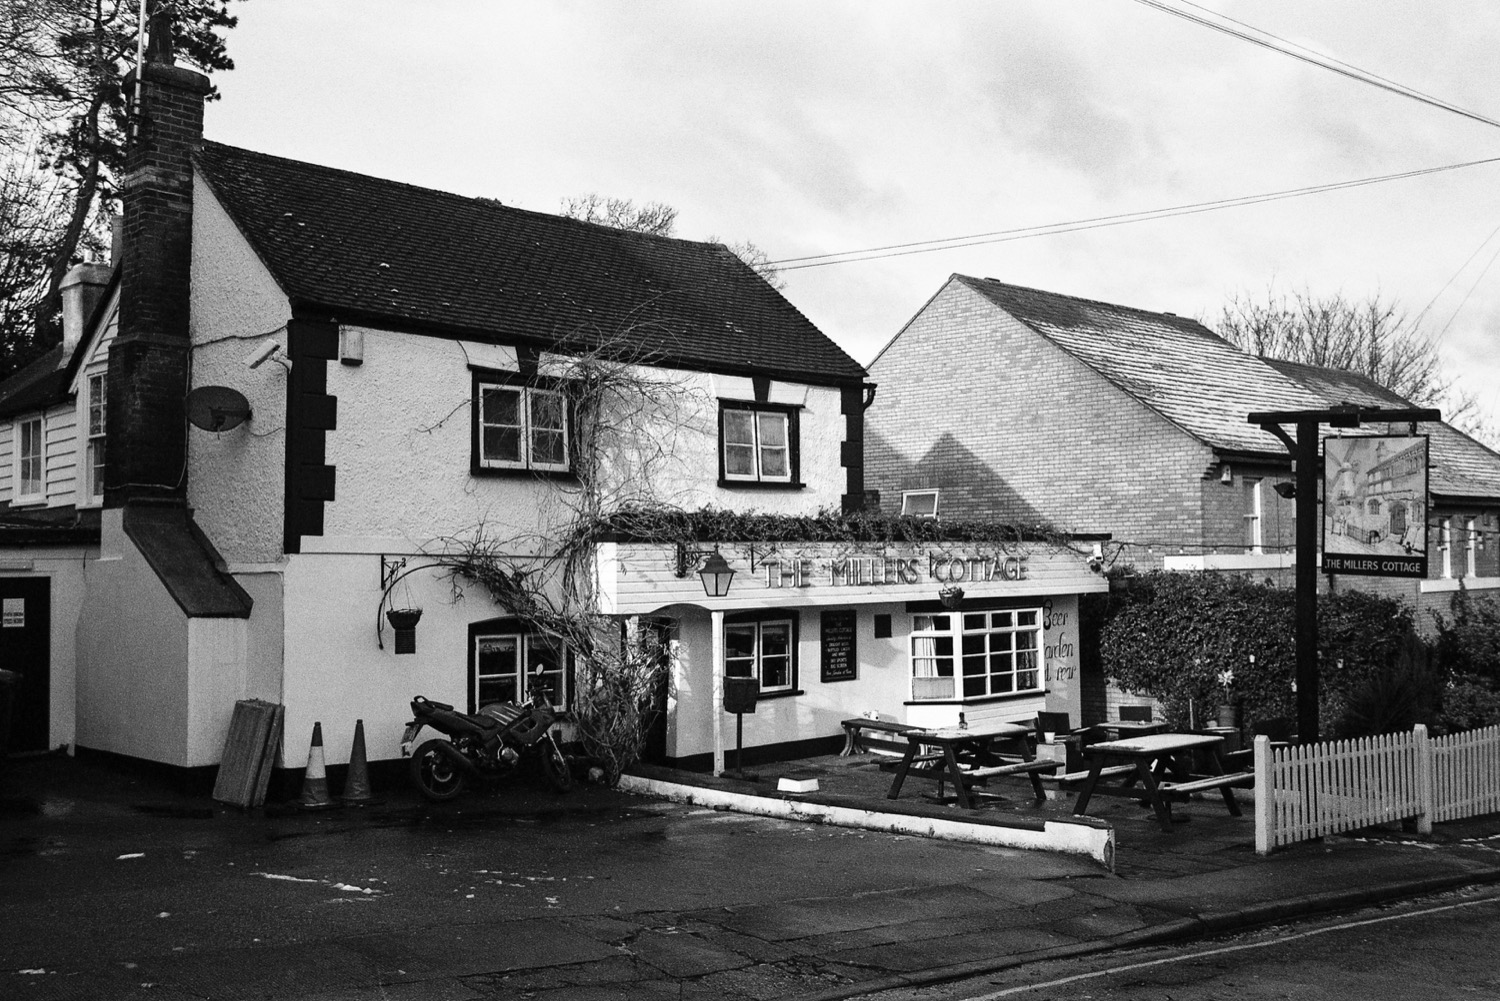 the-millers-cottage-gravesend.jpg